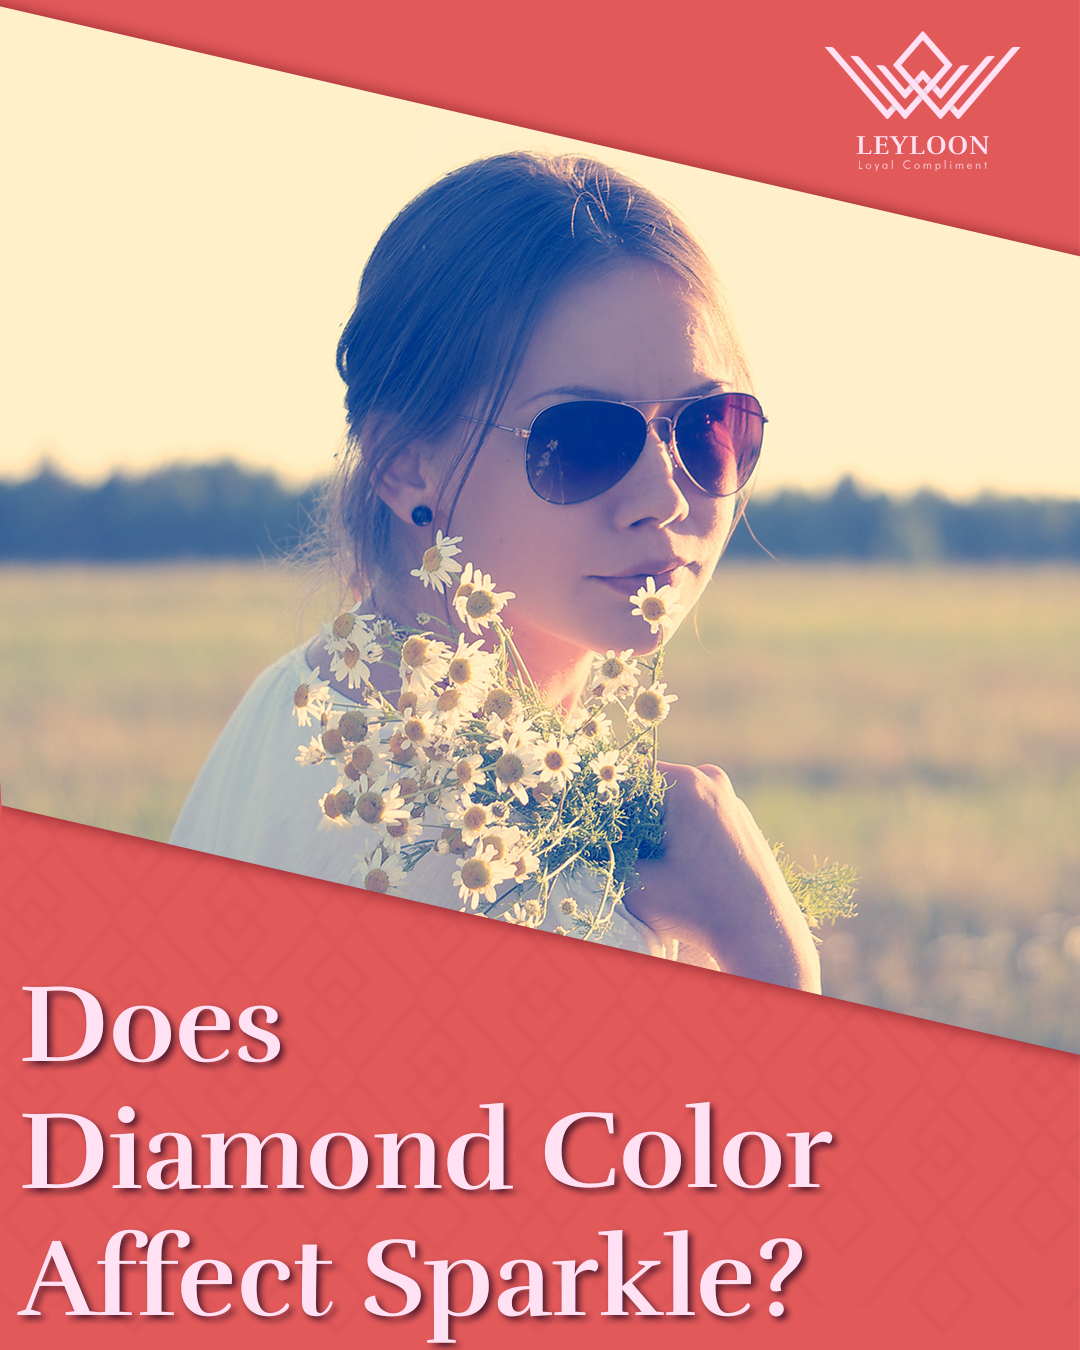 Does Diamond Color Affect Sparkle?